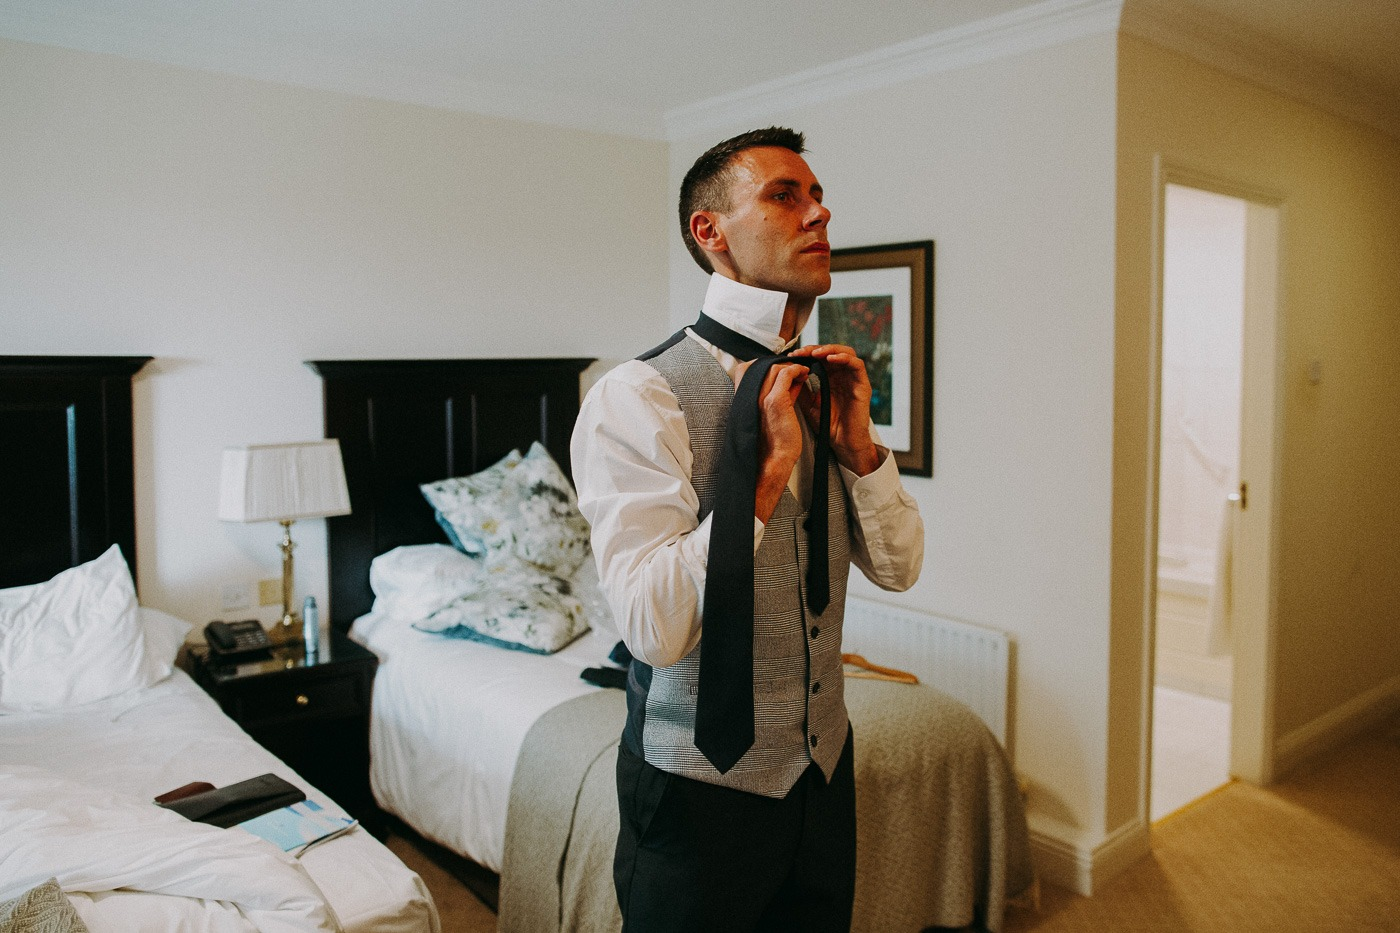 A man wearing a suit and tie standing next to a bed